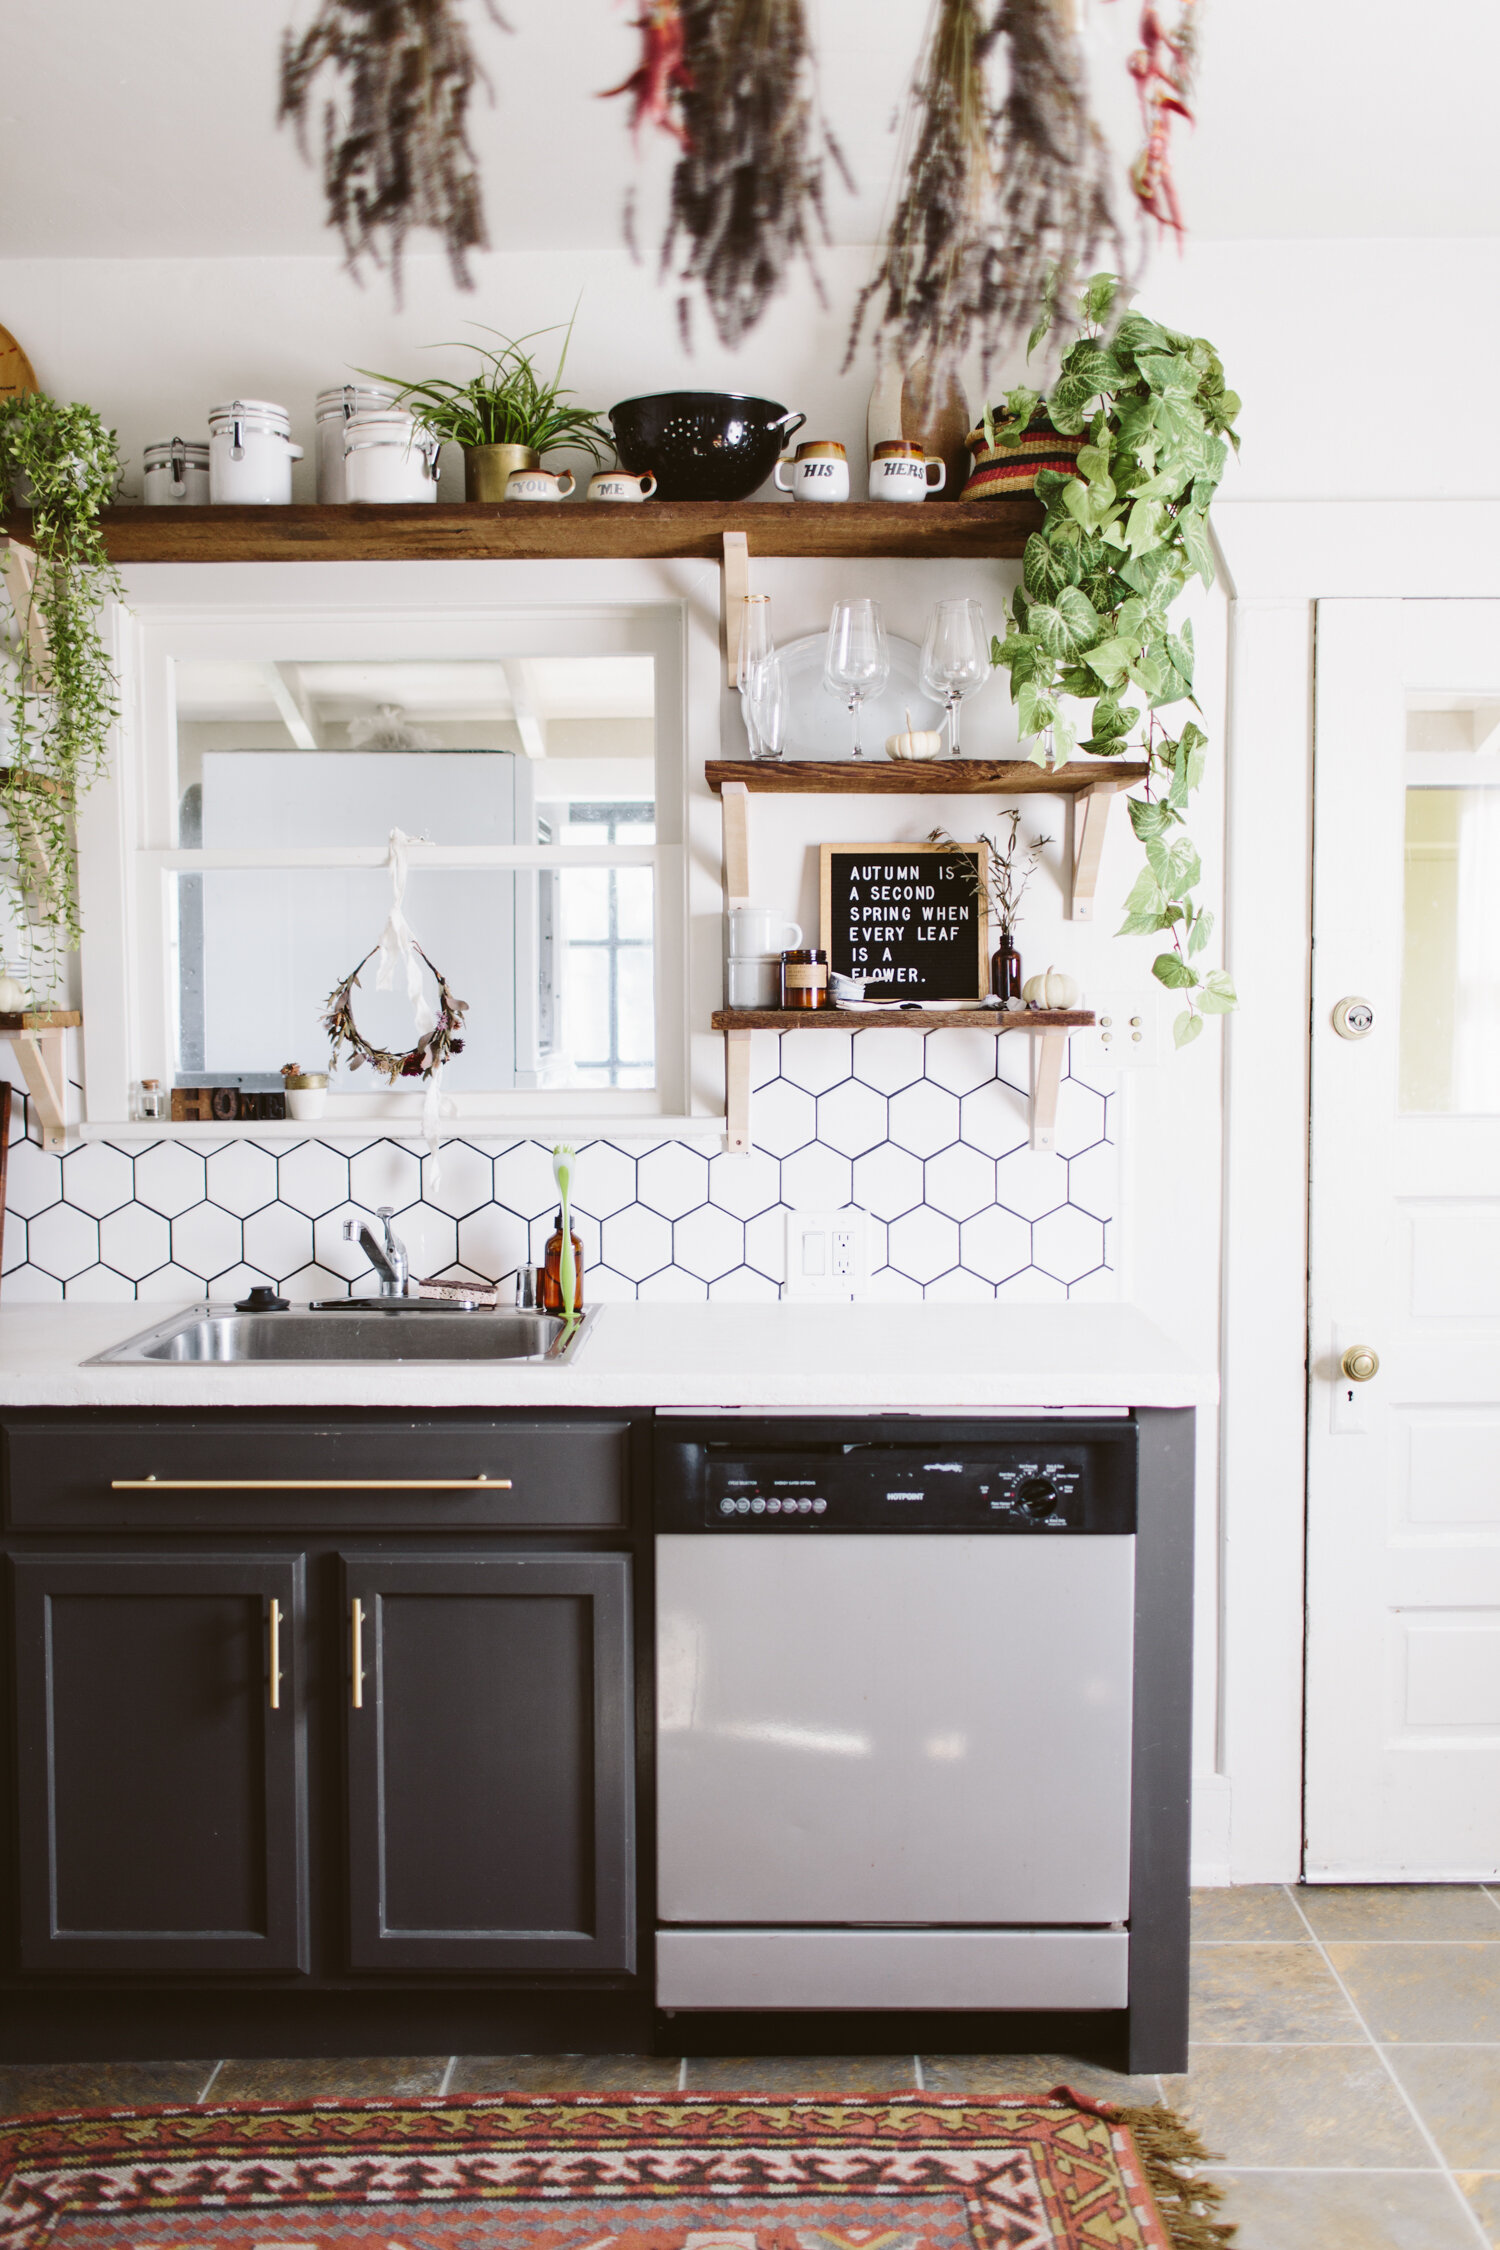 Transform Your Kitchen With Diy Painted Cabinets Liz Morrow